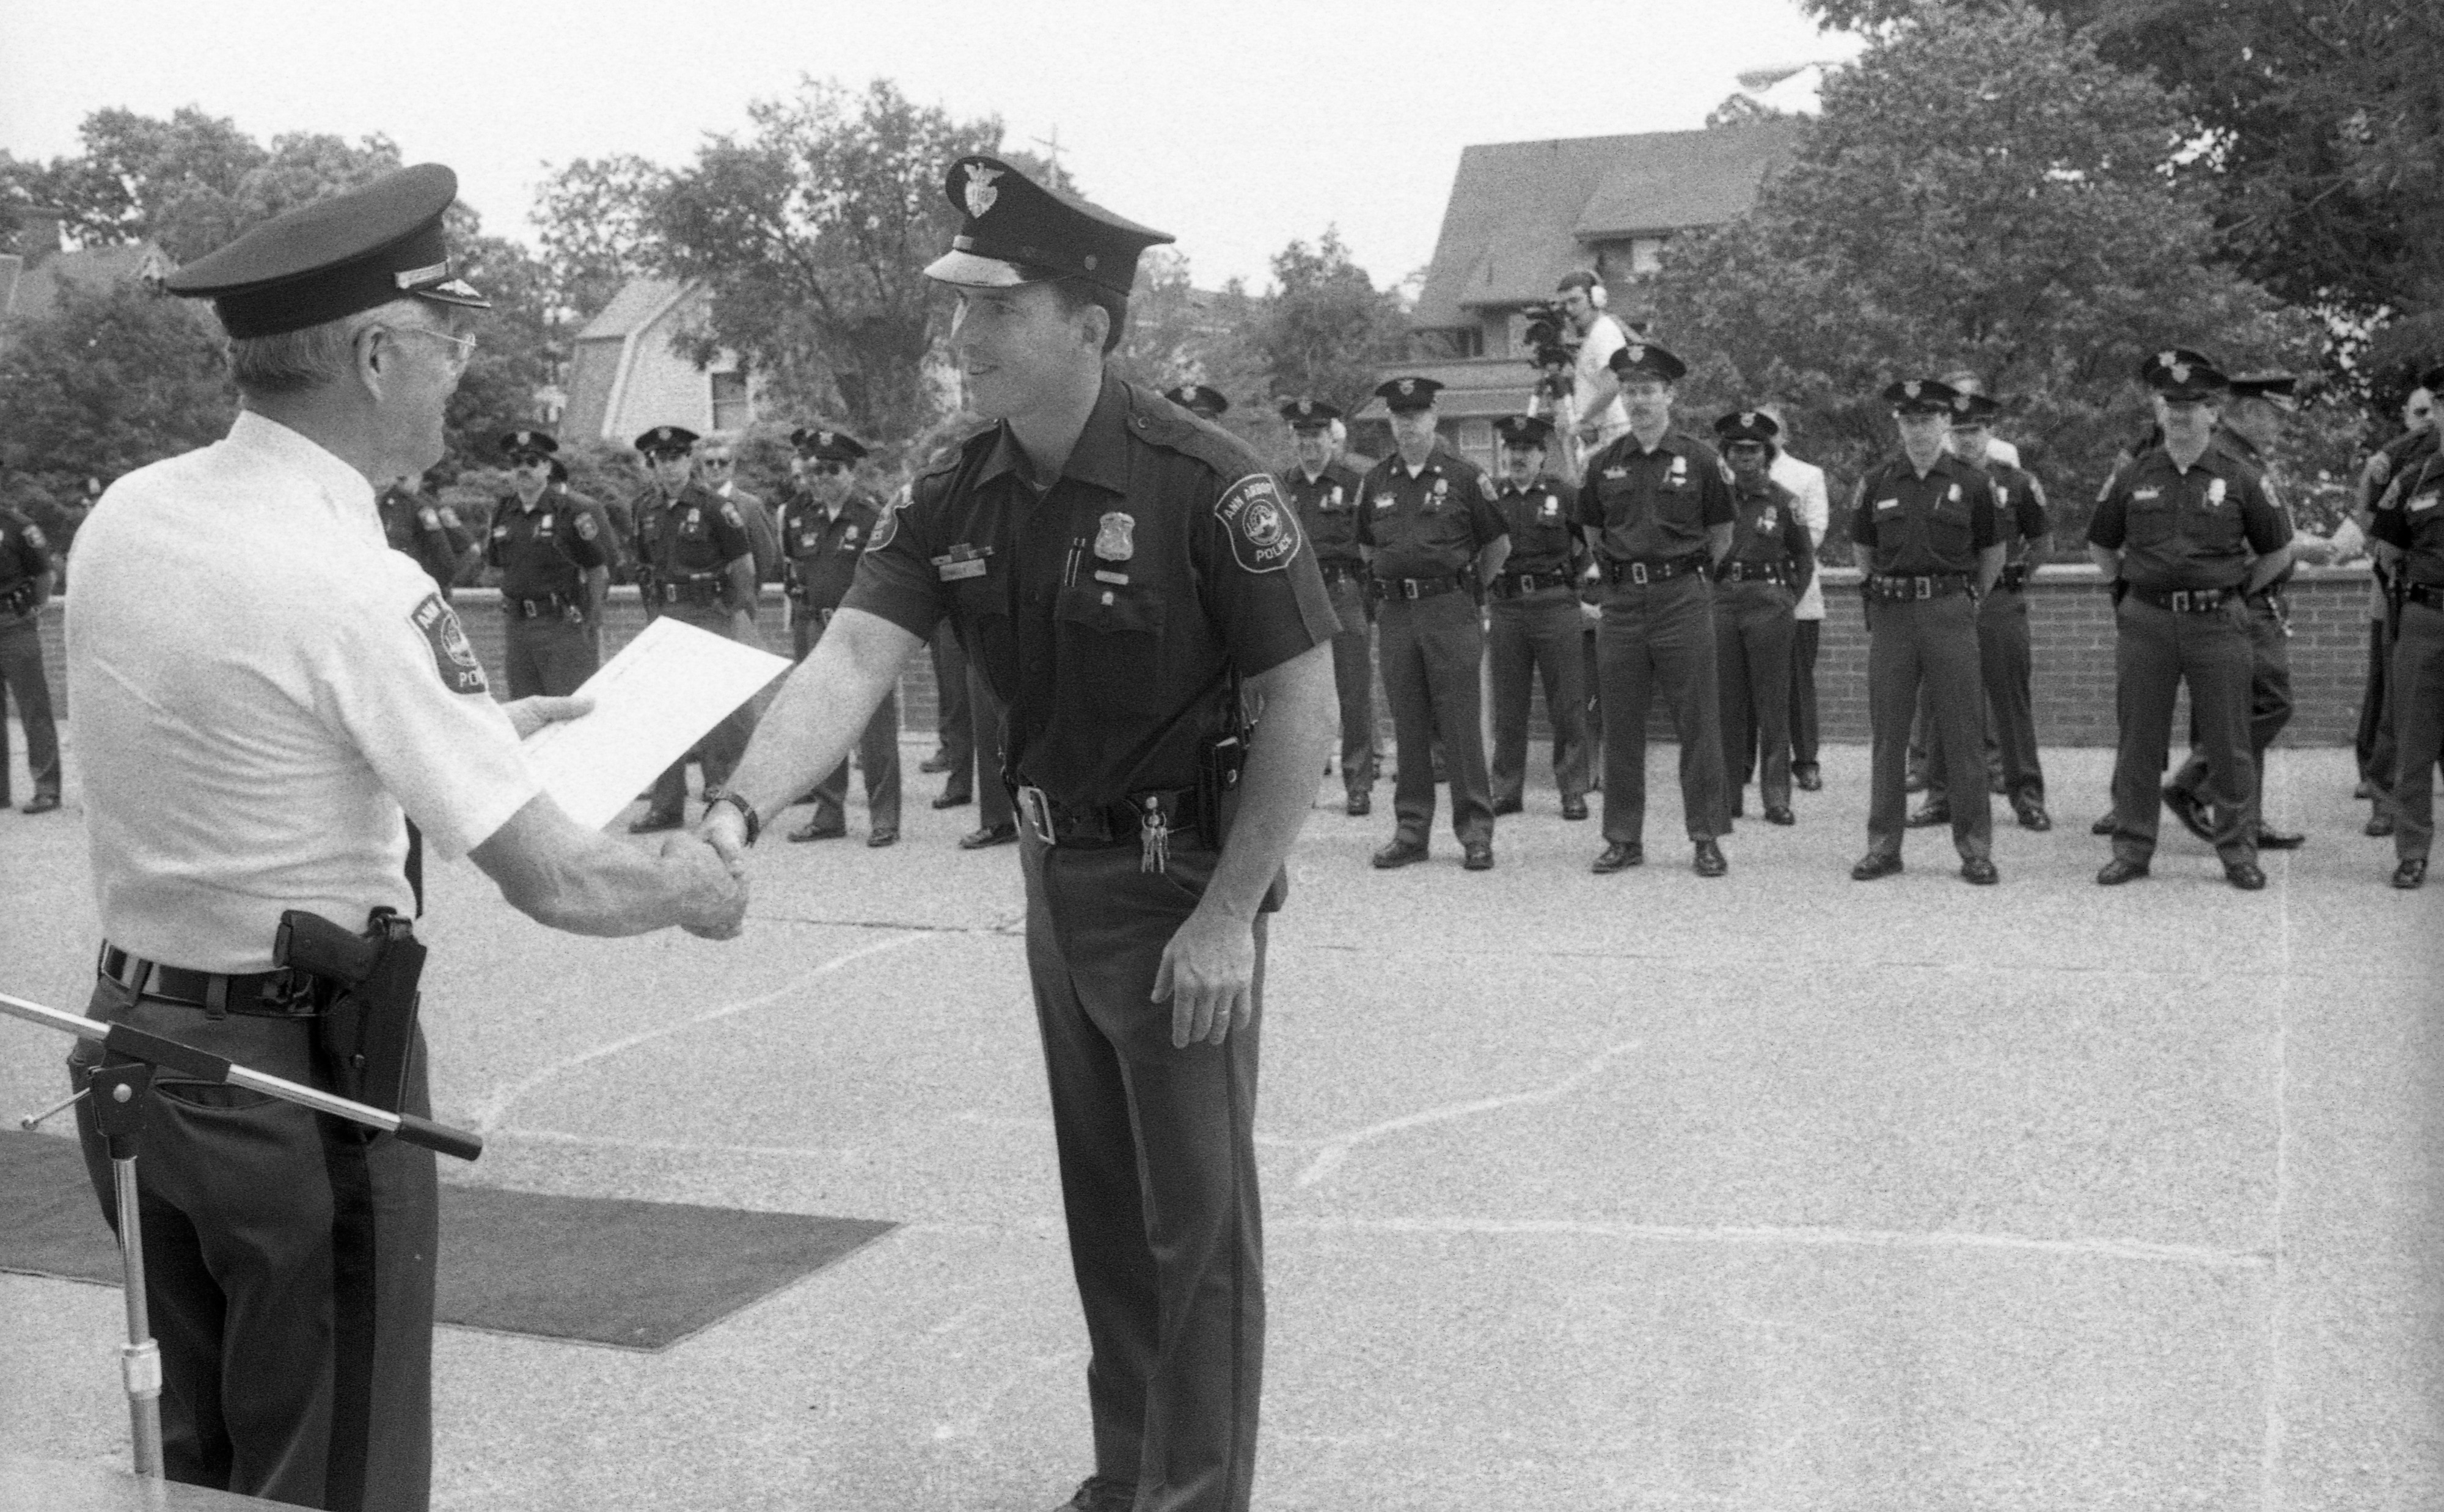 Handshake at the Ann Arbor Police Department Community Service Awards Ceremony, June 1990 image